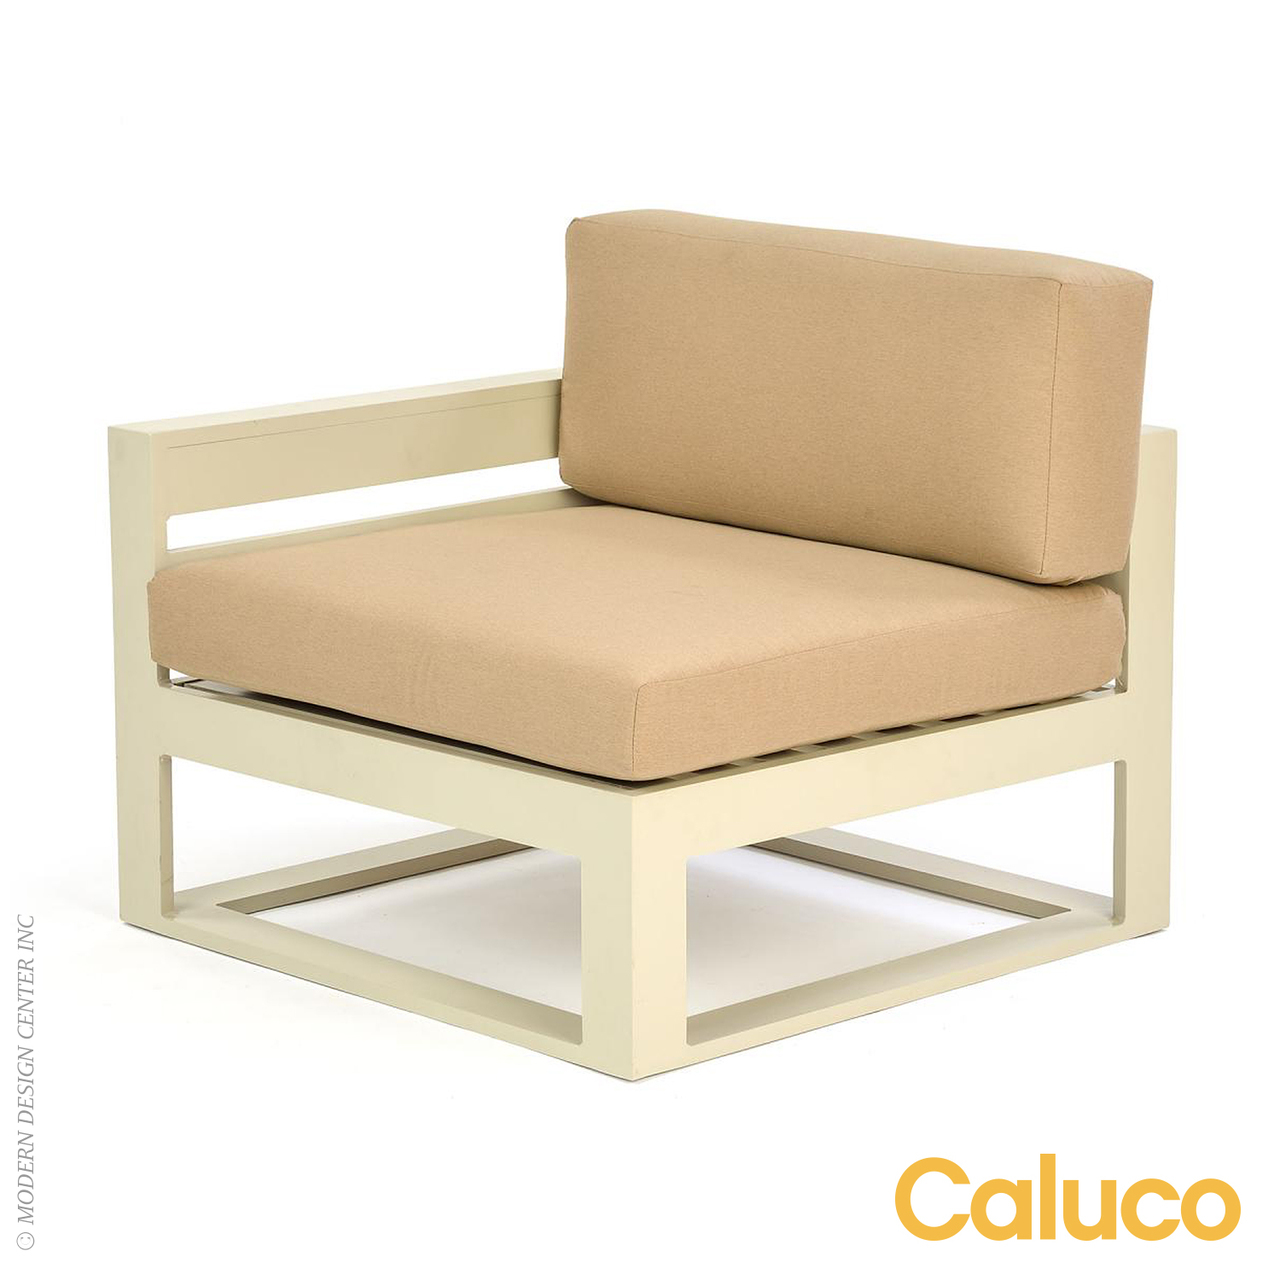 Space sectional right caluco patio furniture metropolitandecor - Outdoor sectionals for small spaces collection ...